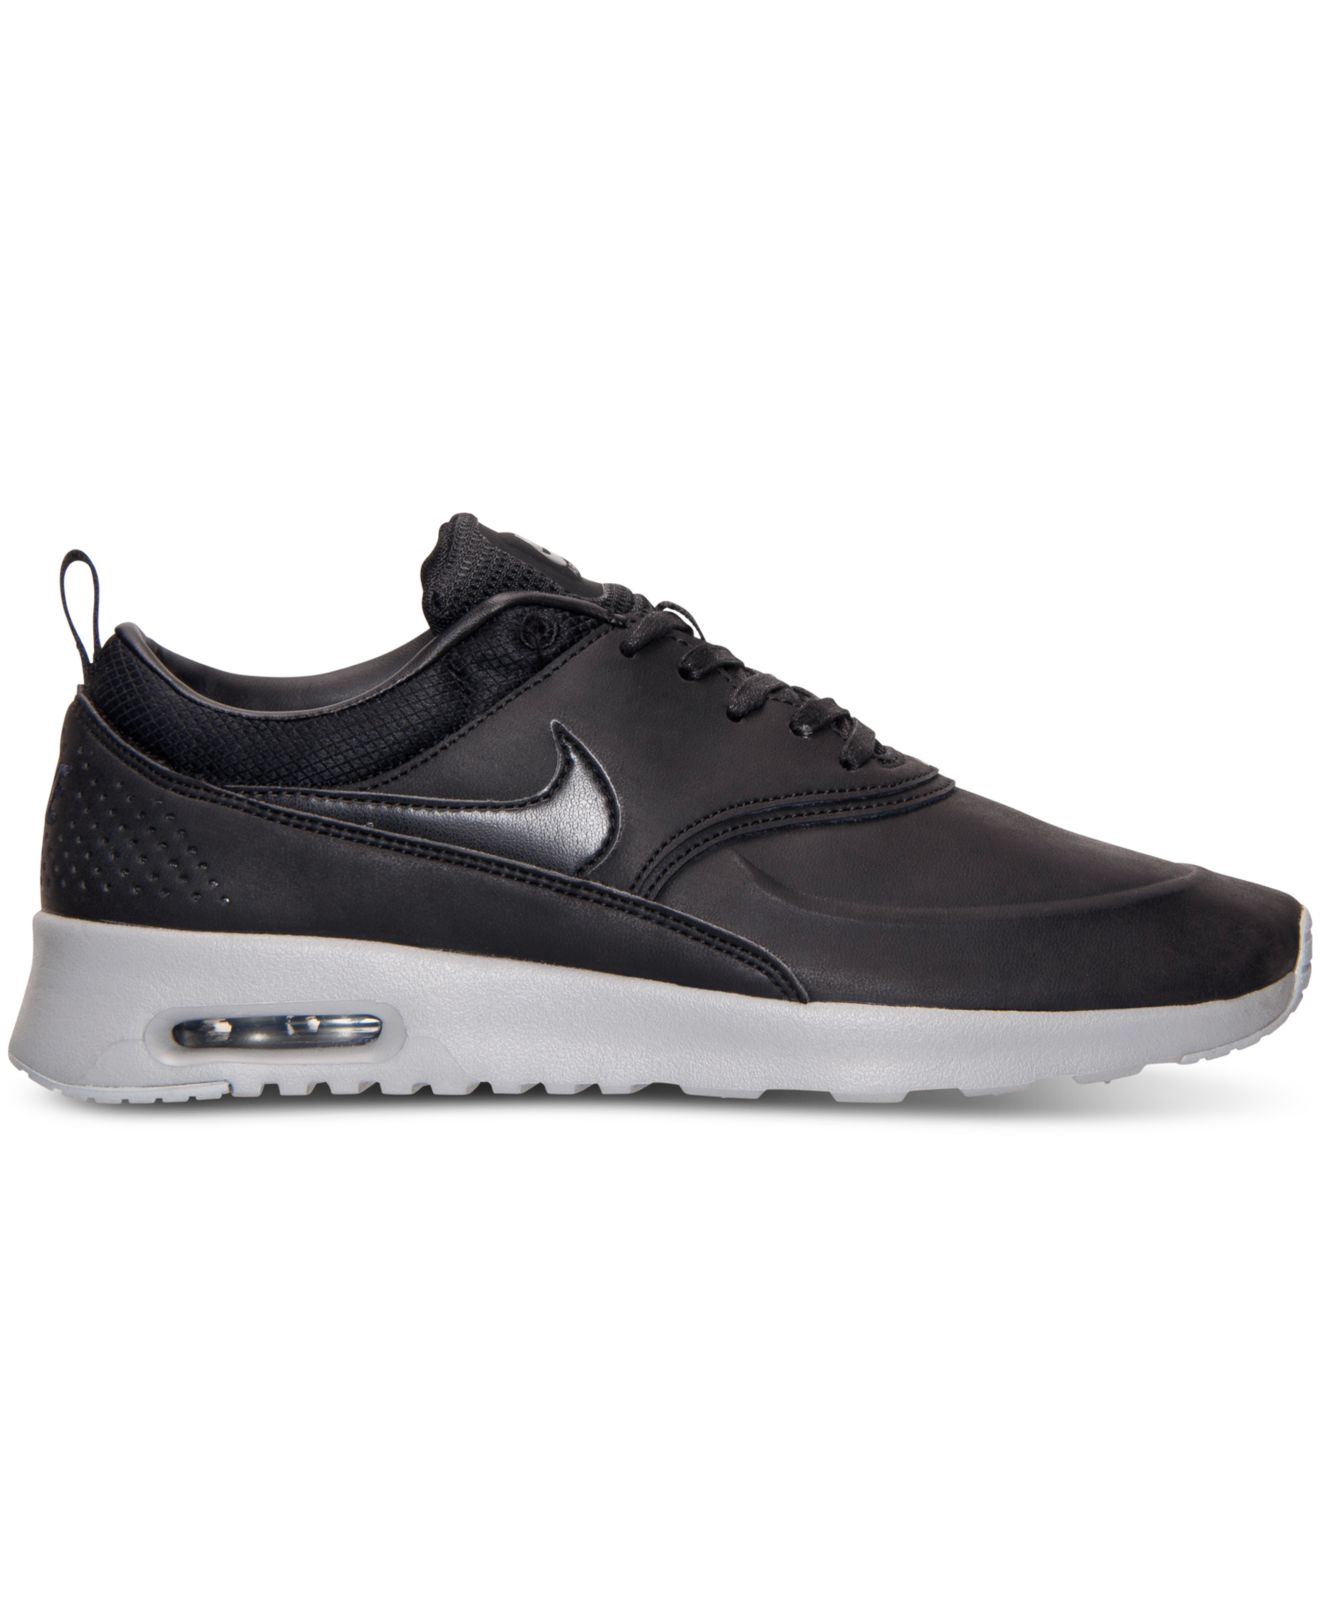 lyst nike women 39 s air max thea premium running sneakers. Black Bedroom Furniture Sets. Home Design Ideas